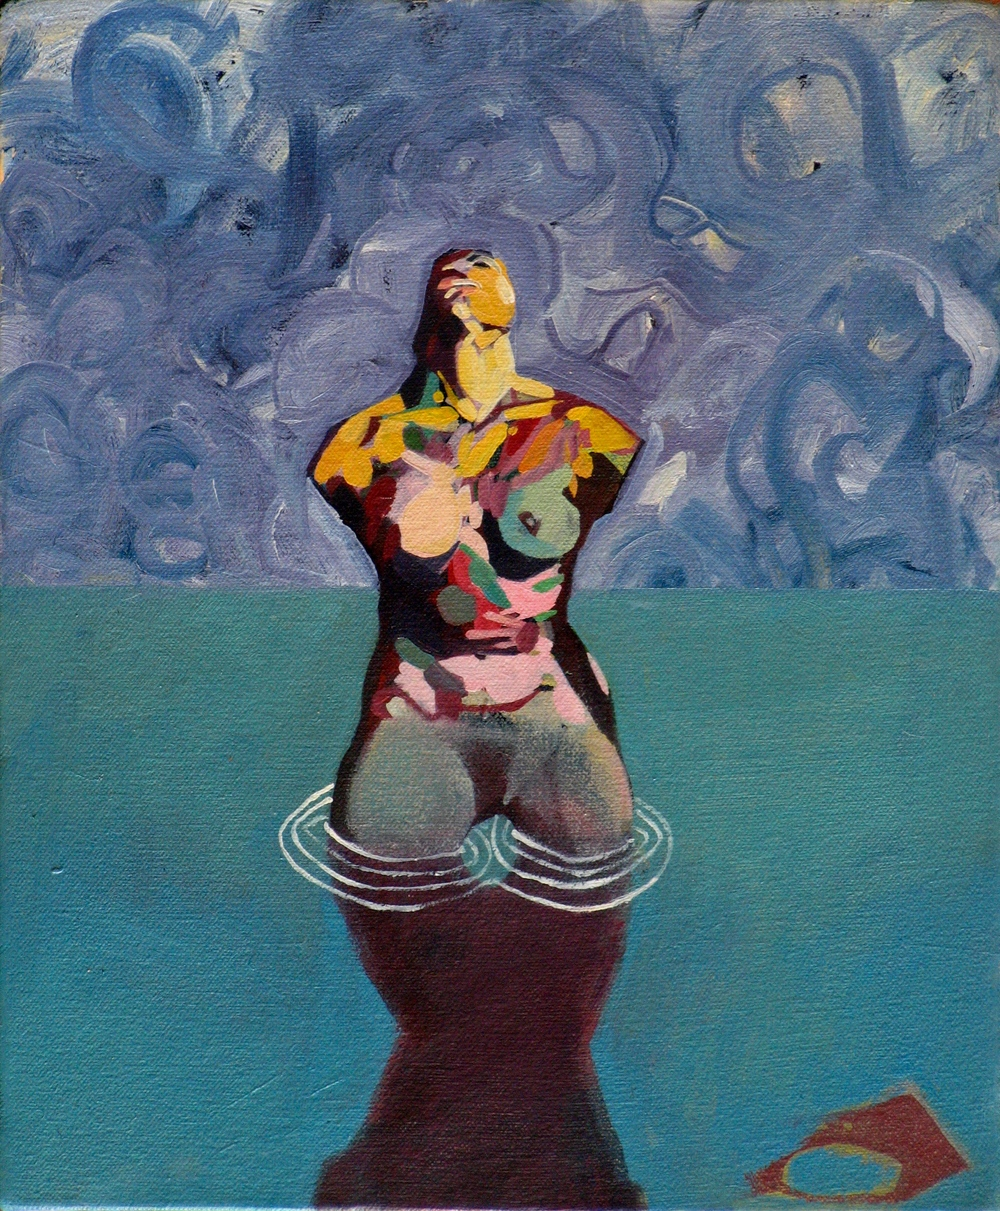 The Bather, 2011, oil on canvas, 12 x 10in.